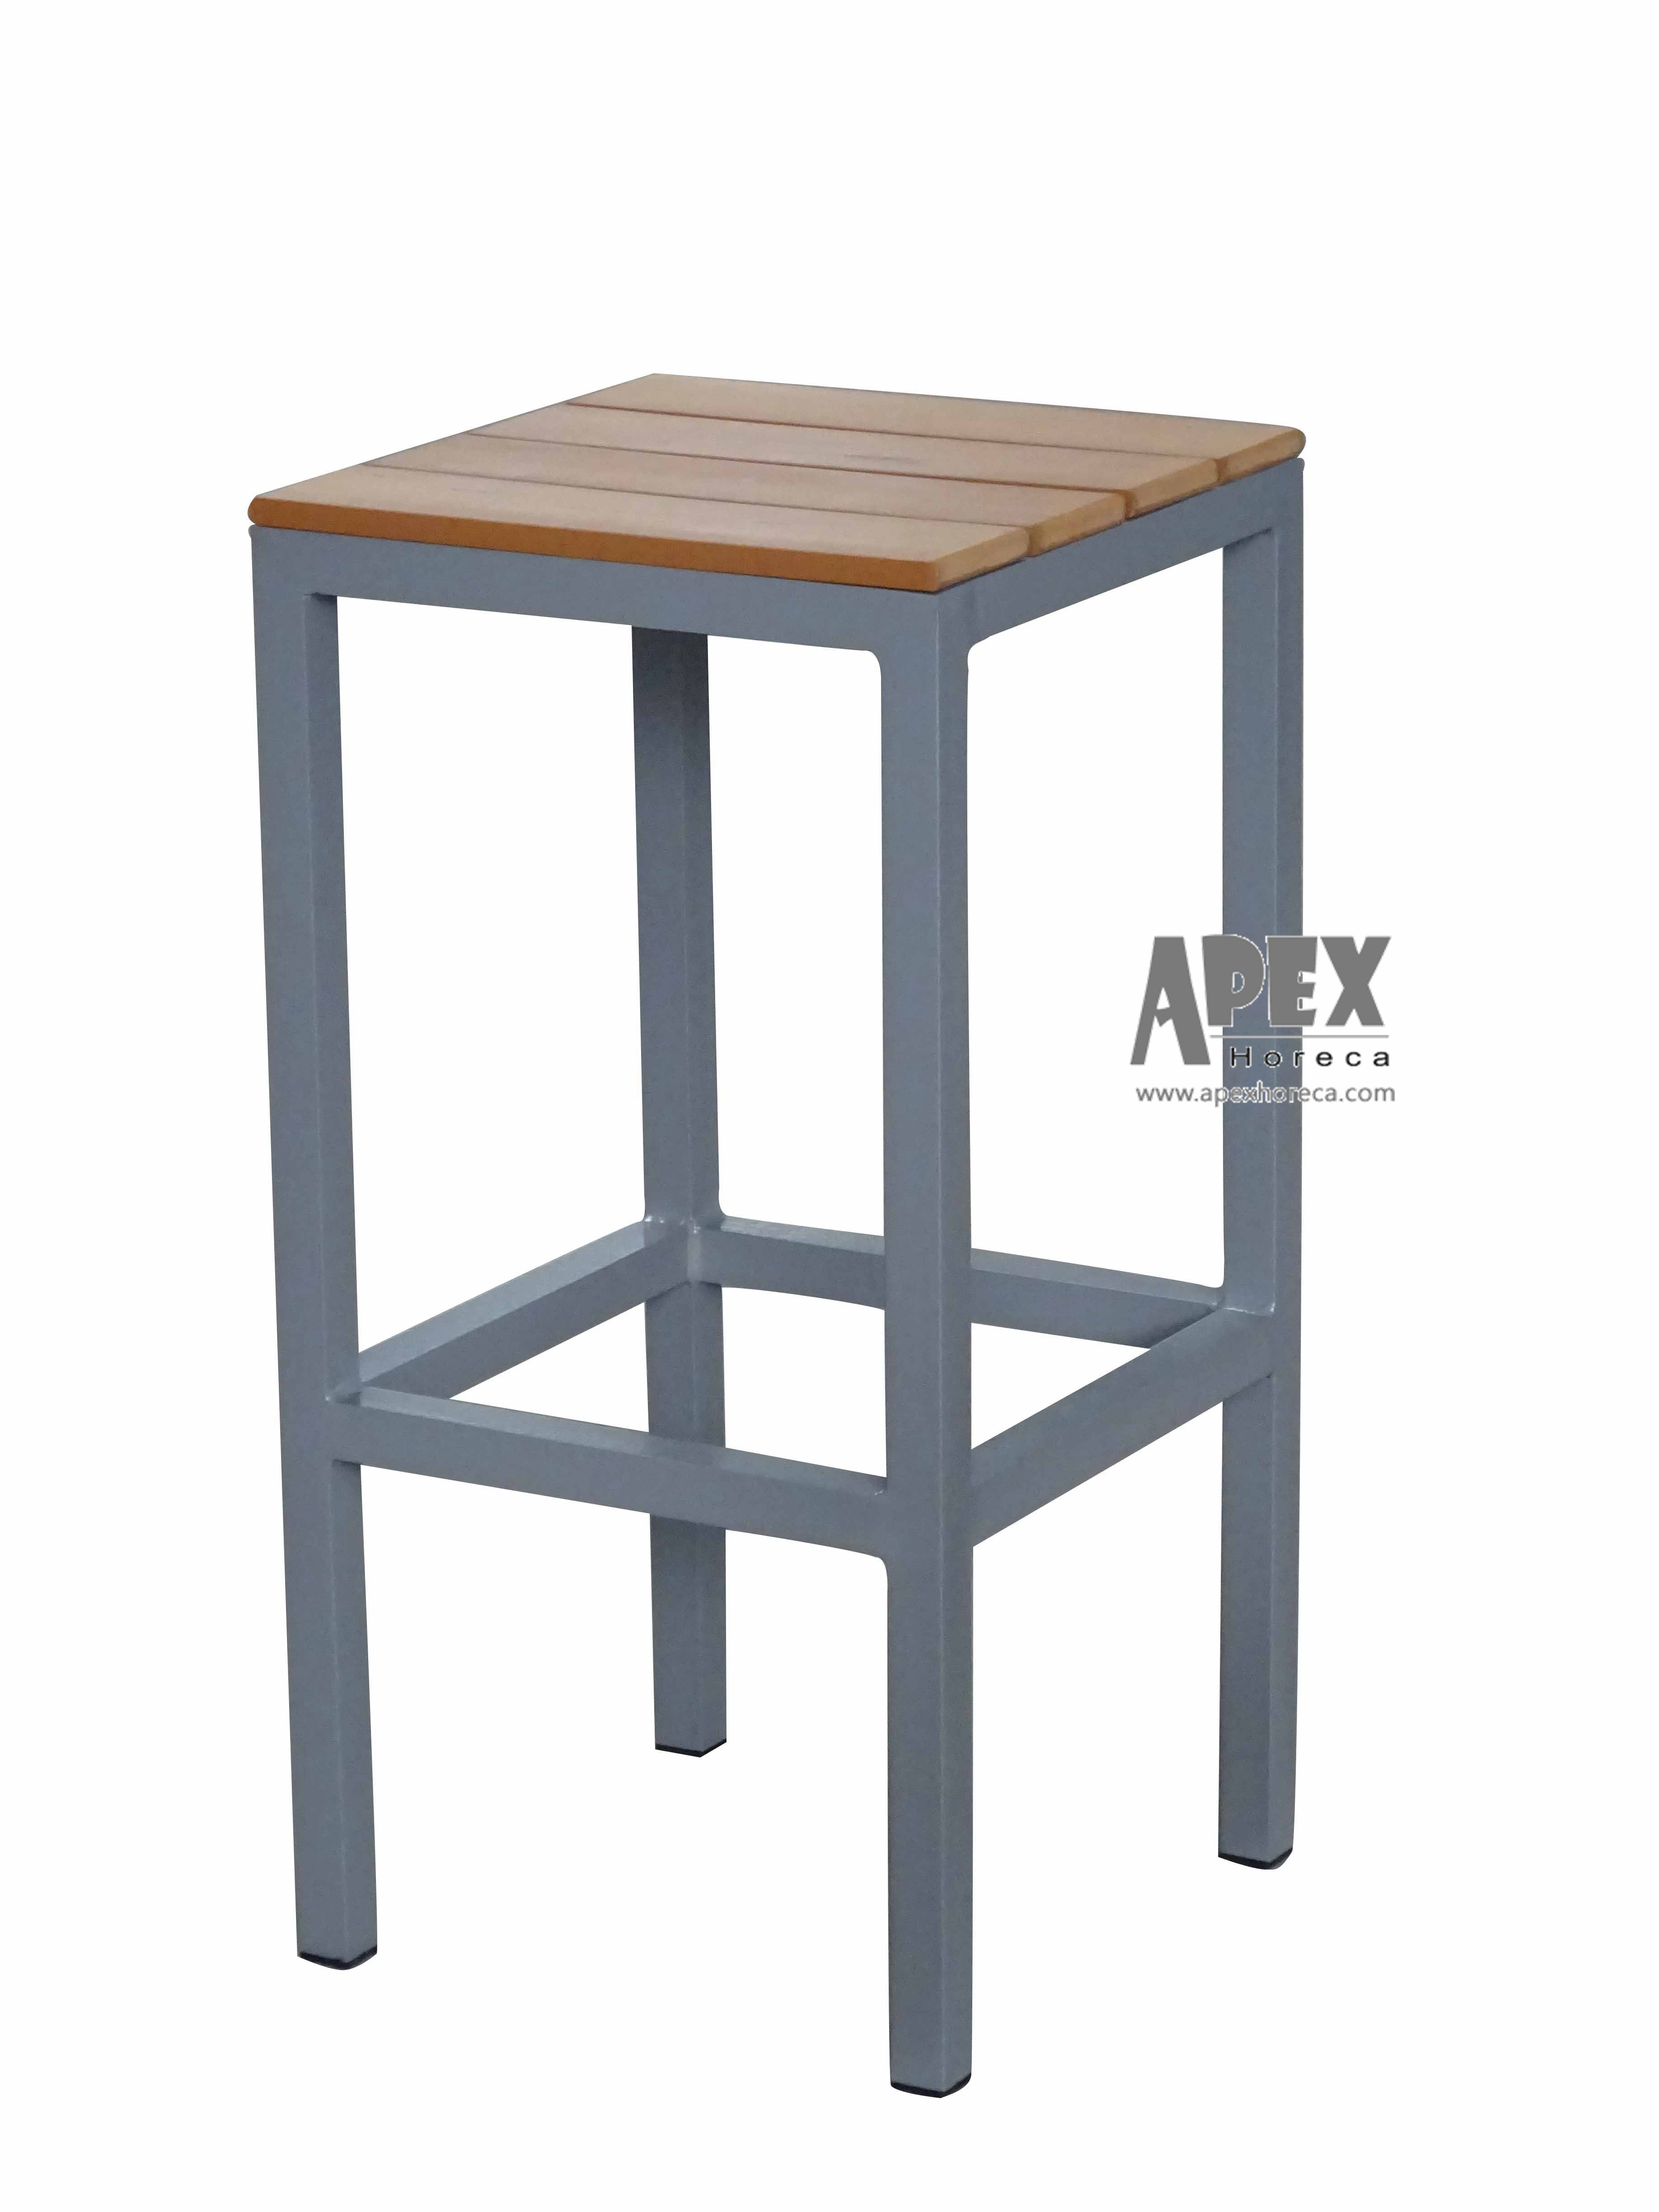 [Hot Item] Outdoor Furniture Aluminum Chair for Restaurant and Cafe Usage